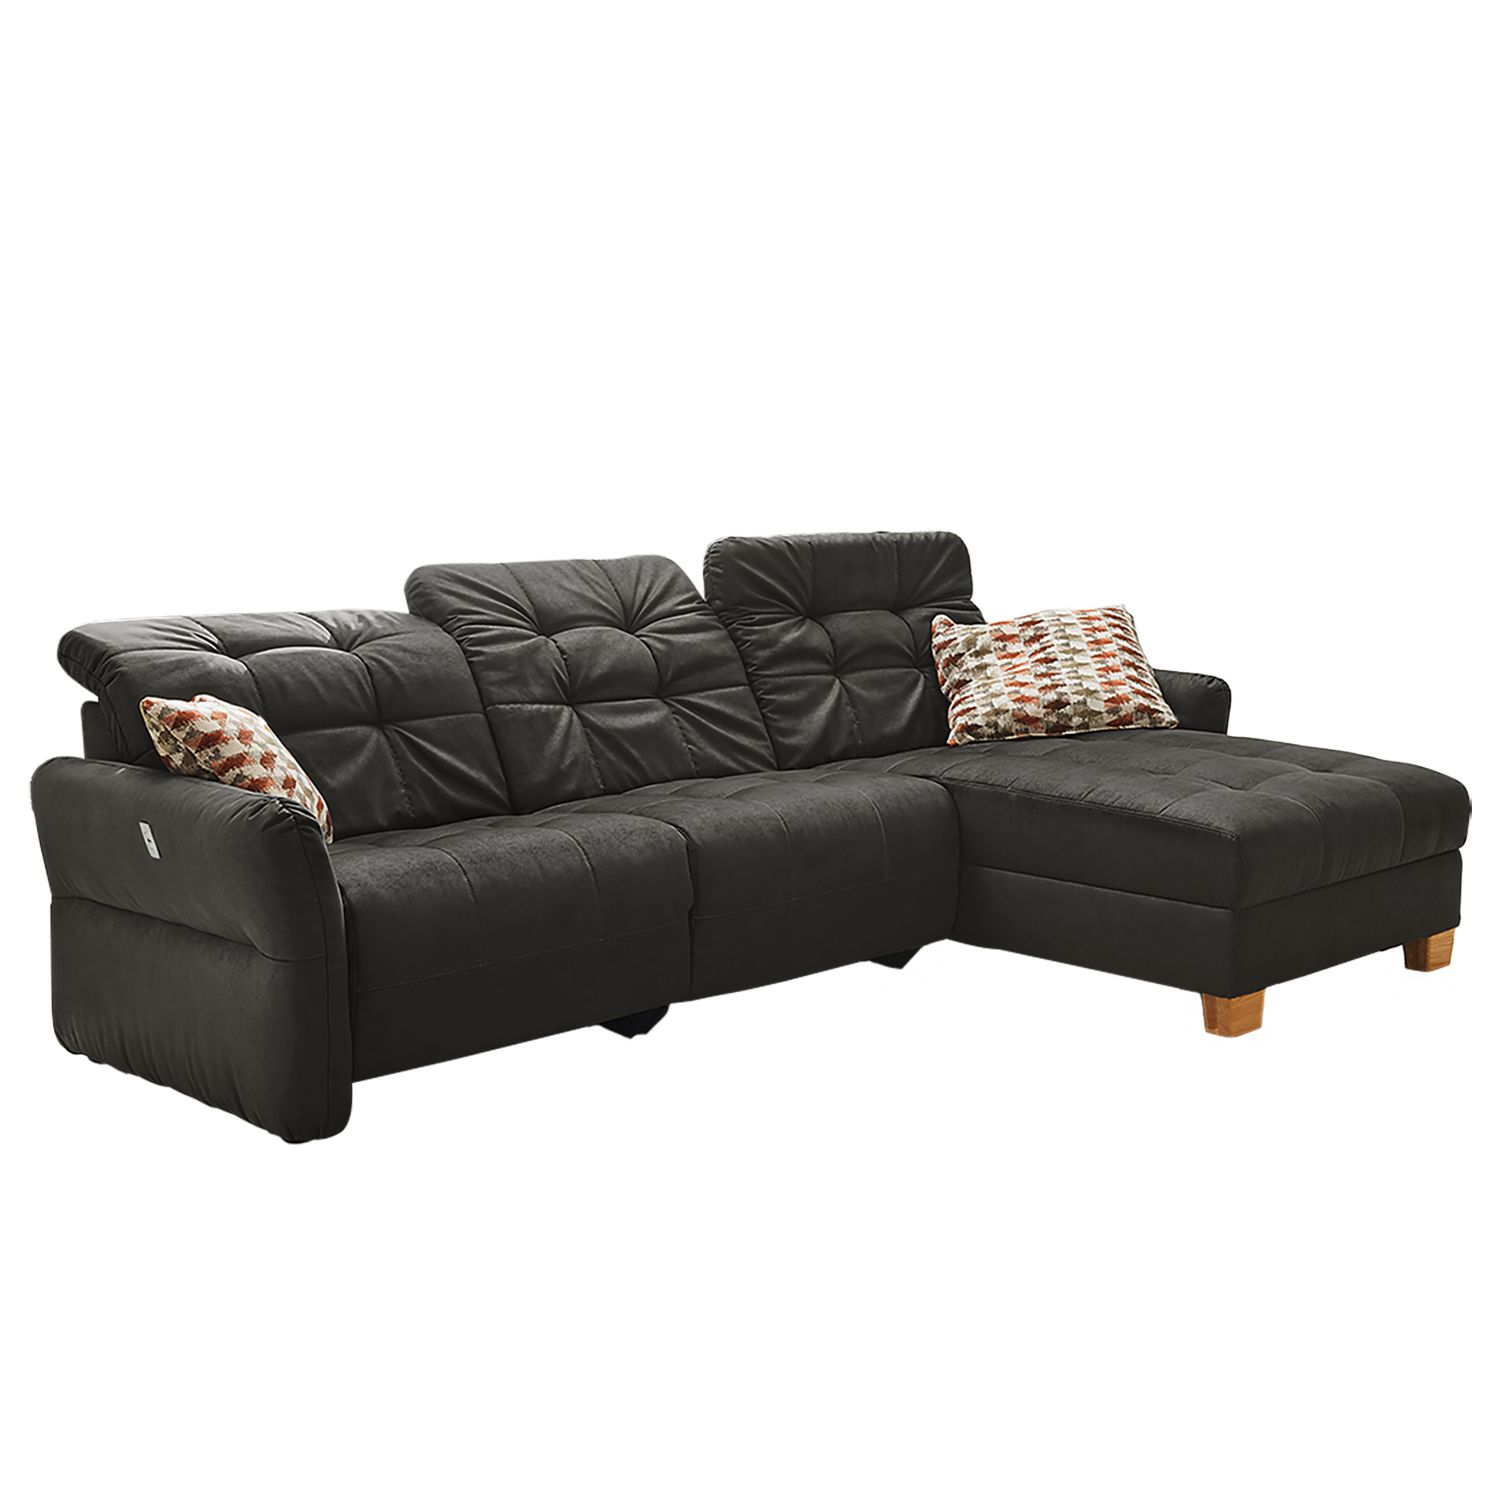 home24 Ecksofa Tepic